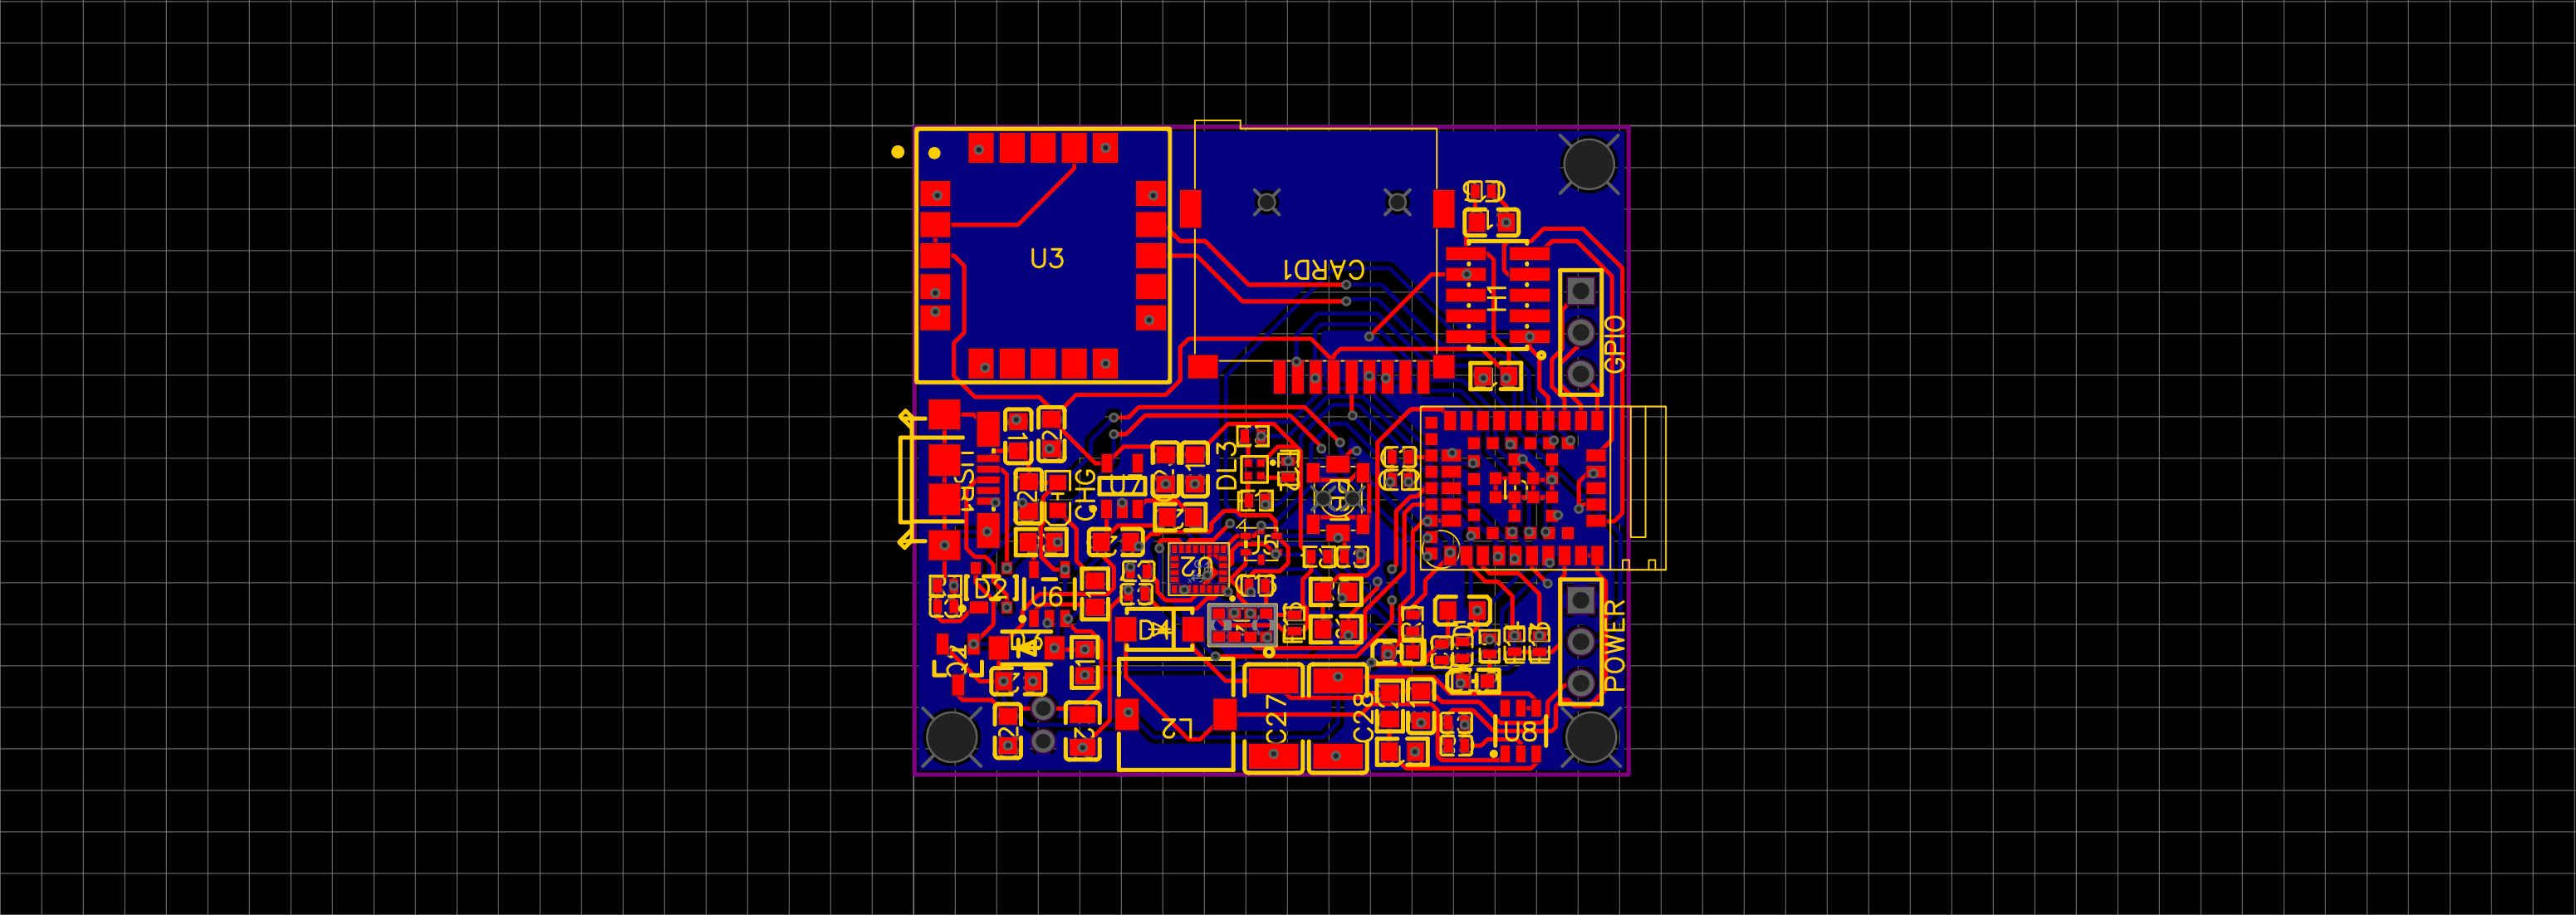 /how-to-build-a-gps-tracker-from-scratch-using-arduino-y81o3u79 feature image